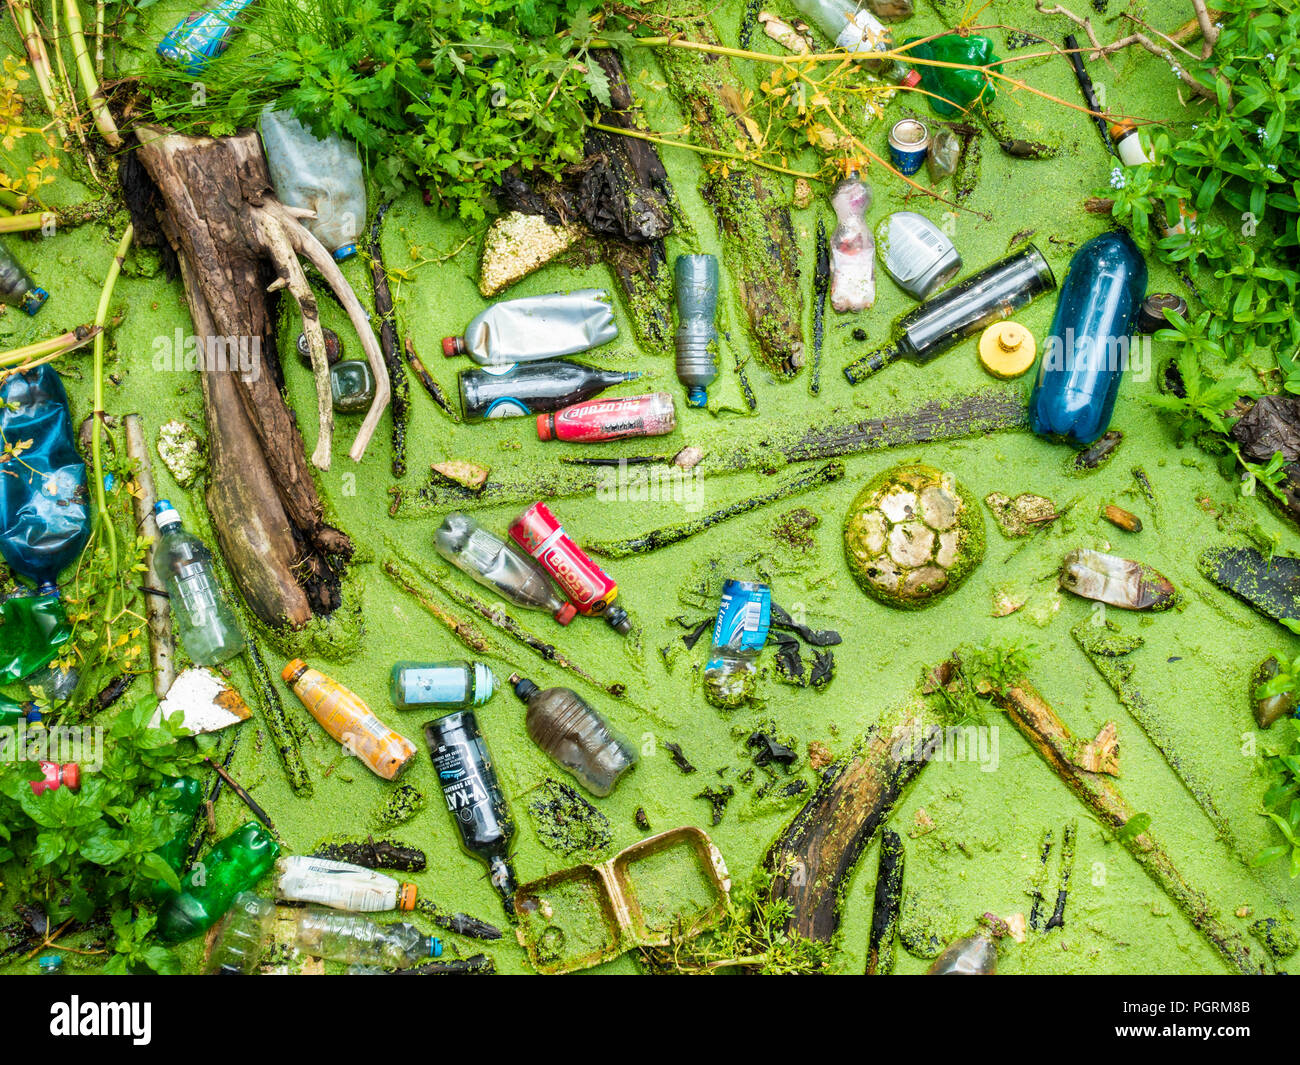 Plastic bottles and rubbish in UK river - Stock Image